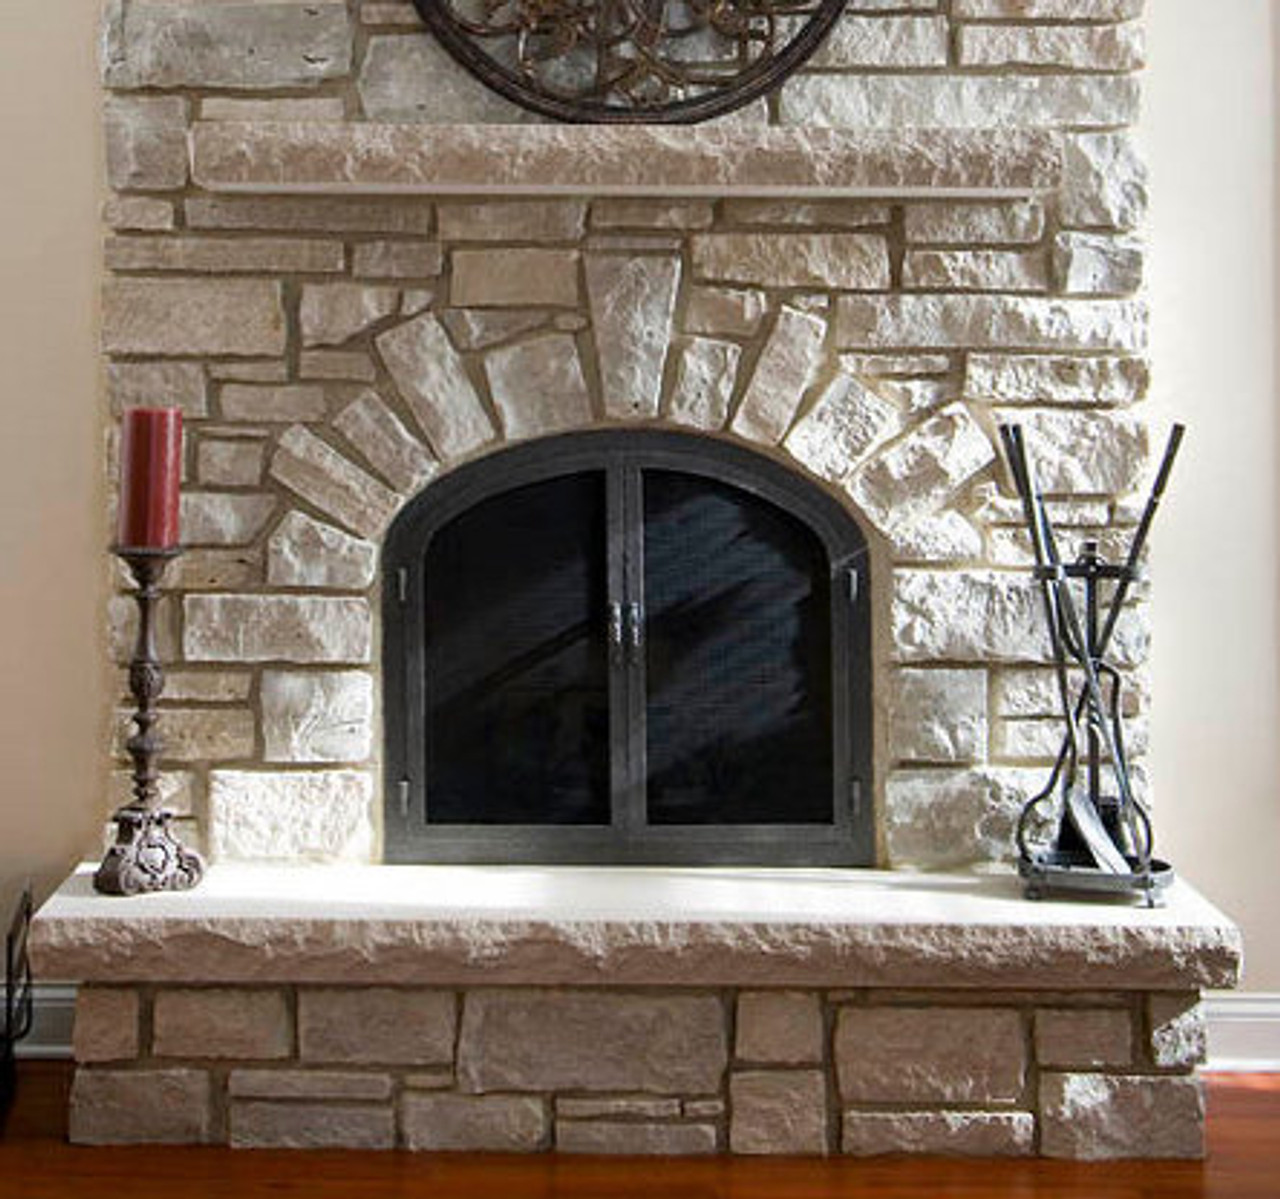 Standard Buff Fireplace Hearth Honed Surface with Chiseled Edges